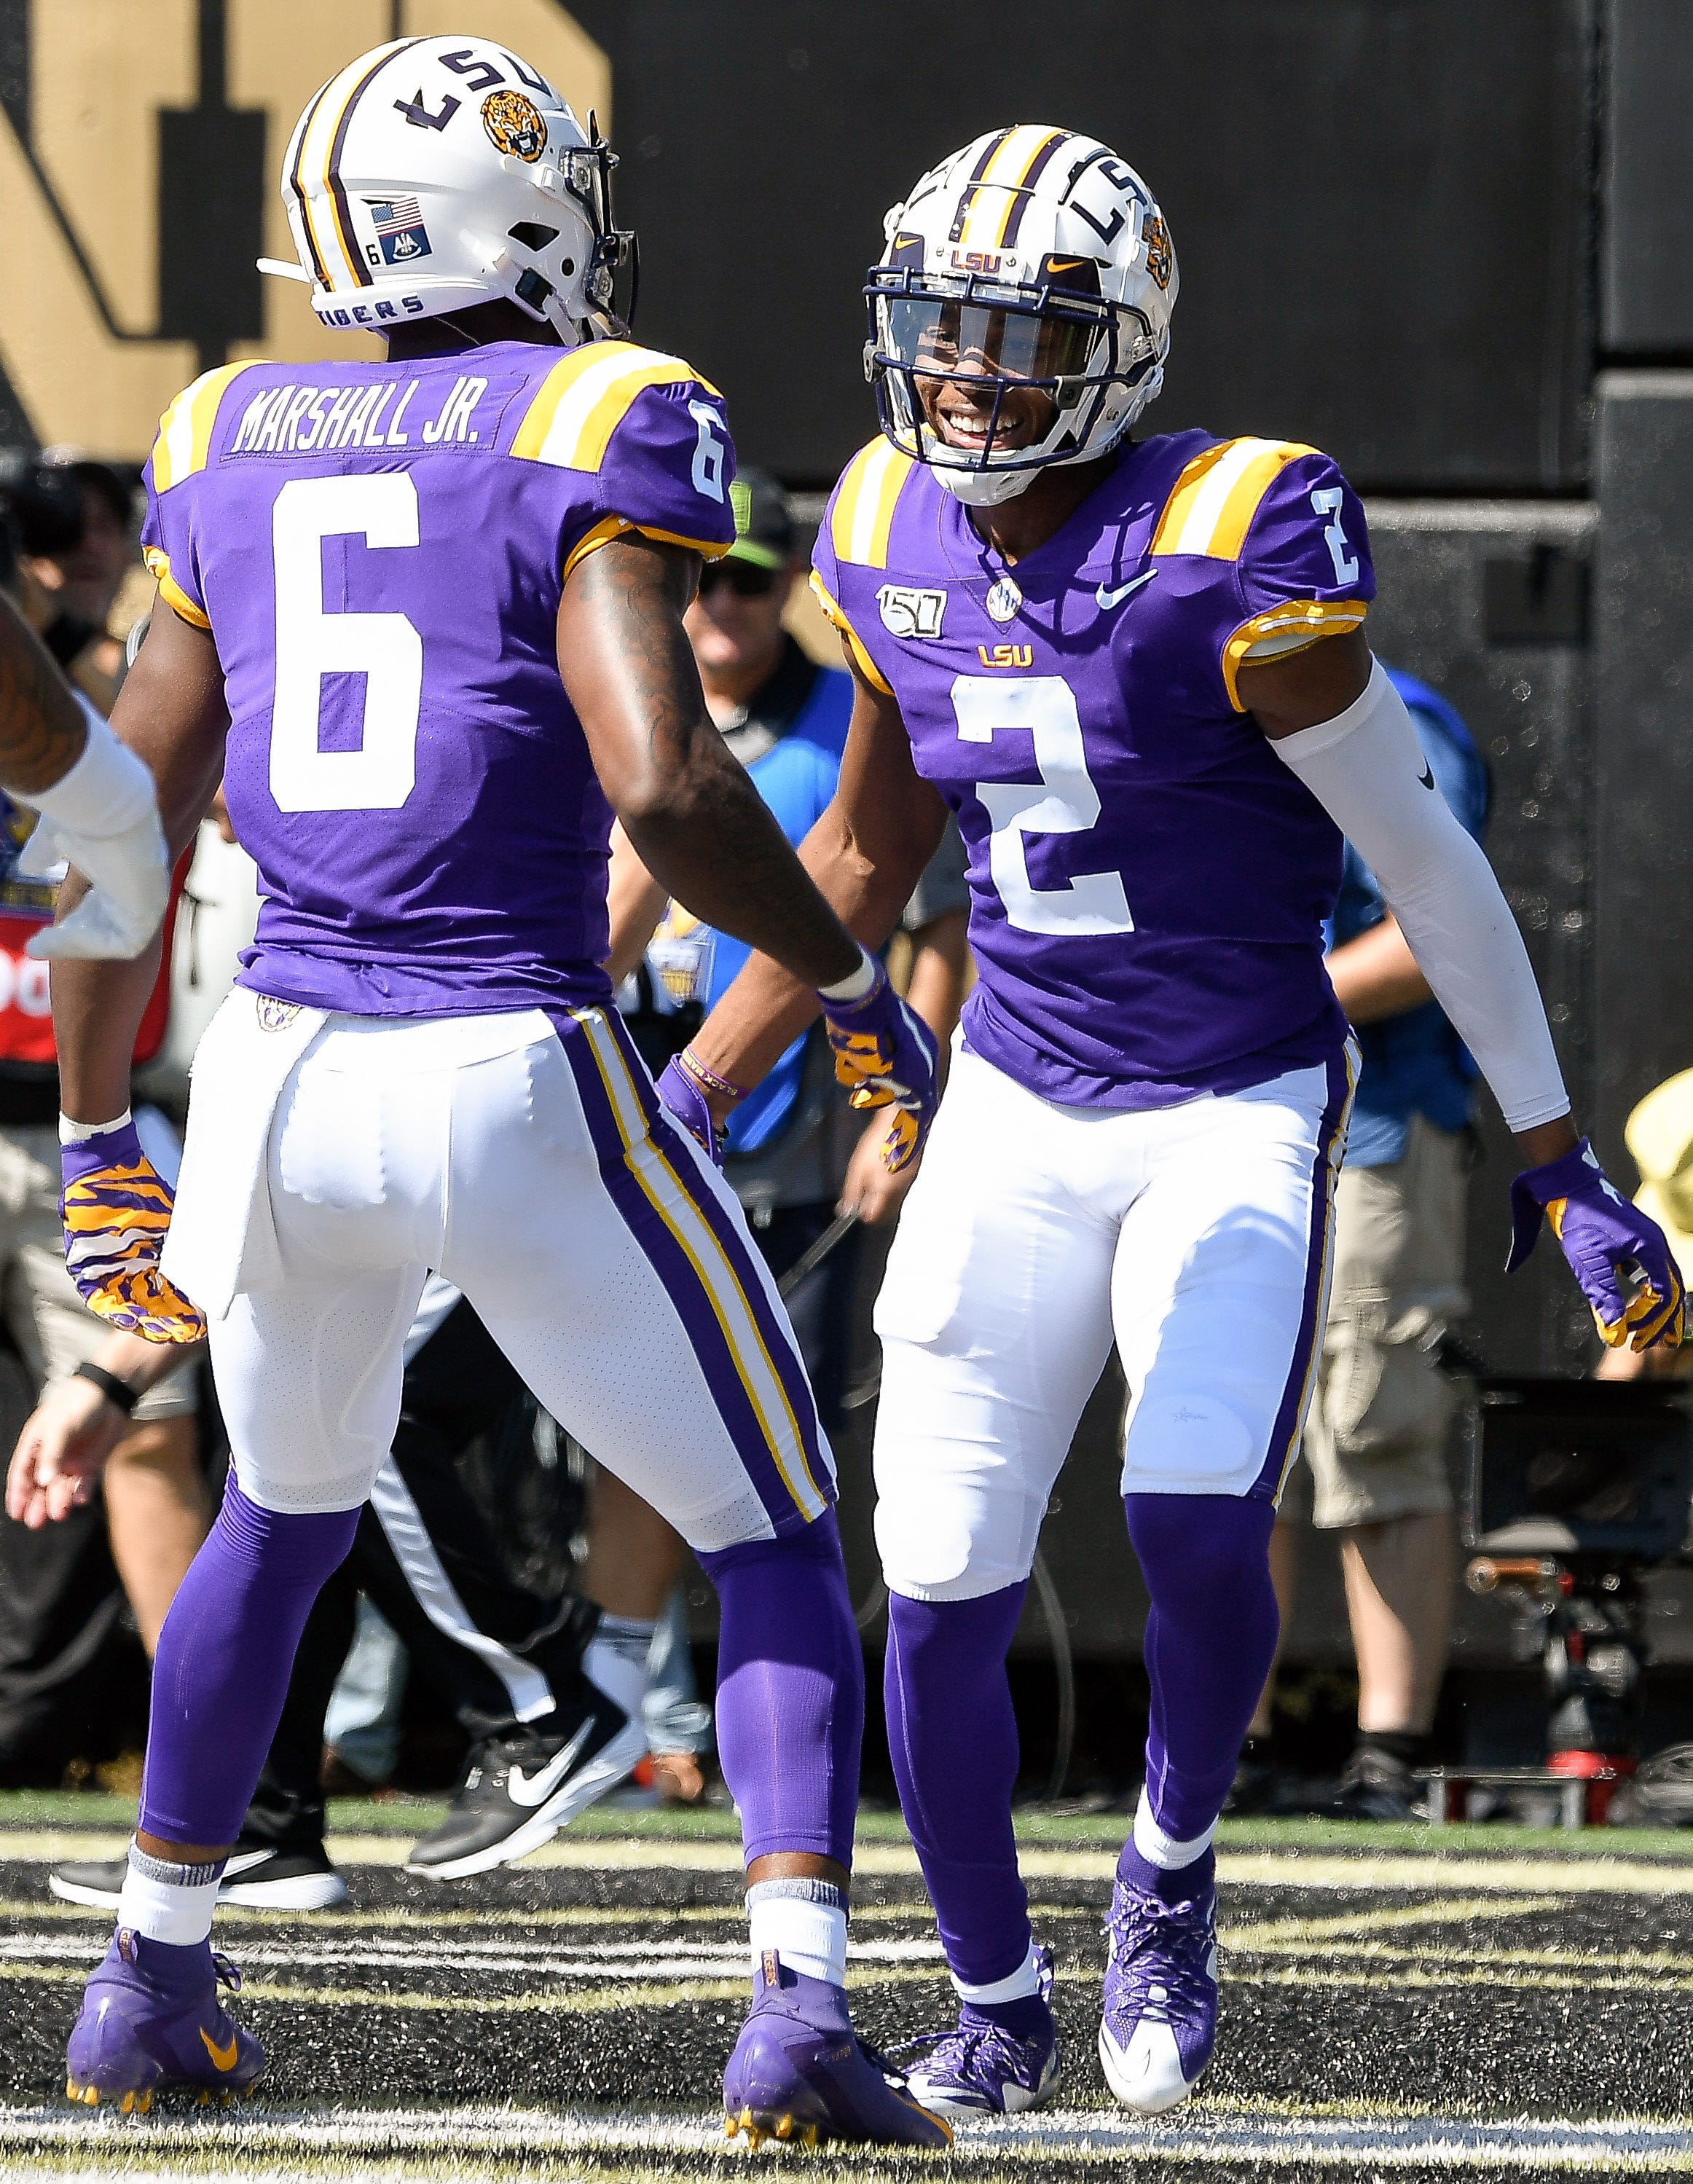 LSU football wears purple uniforms rarely in back-to-back games